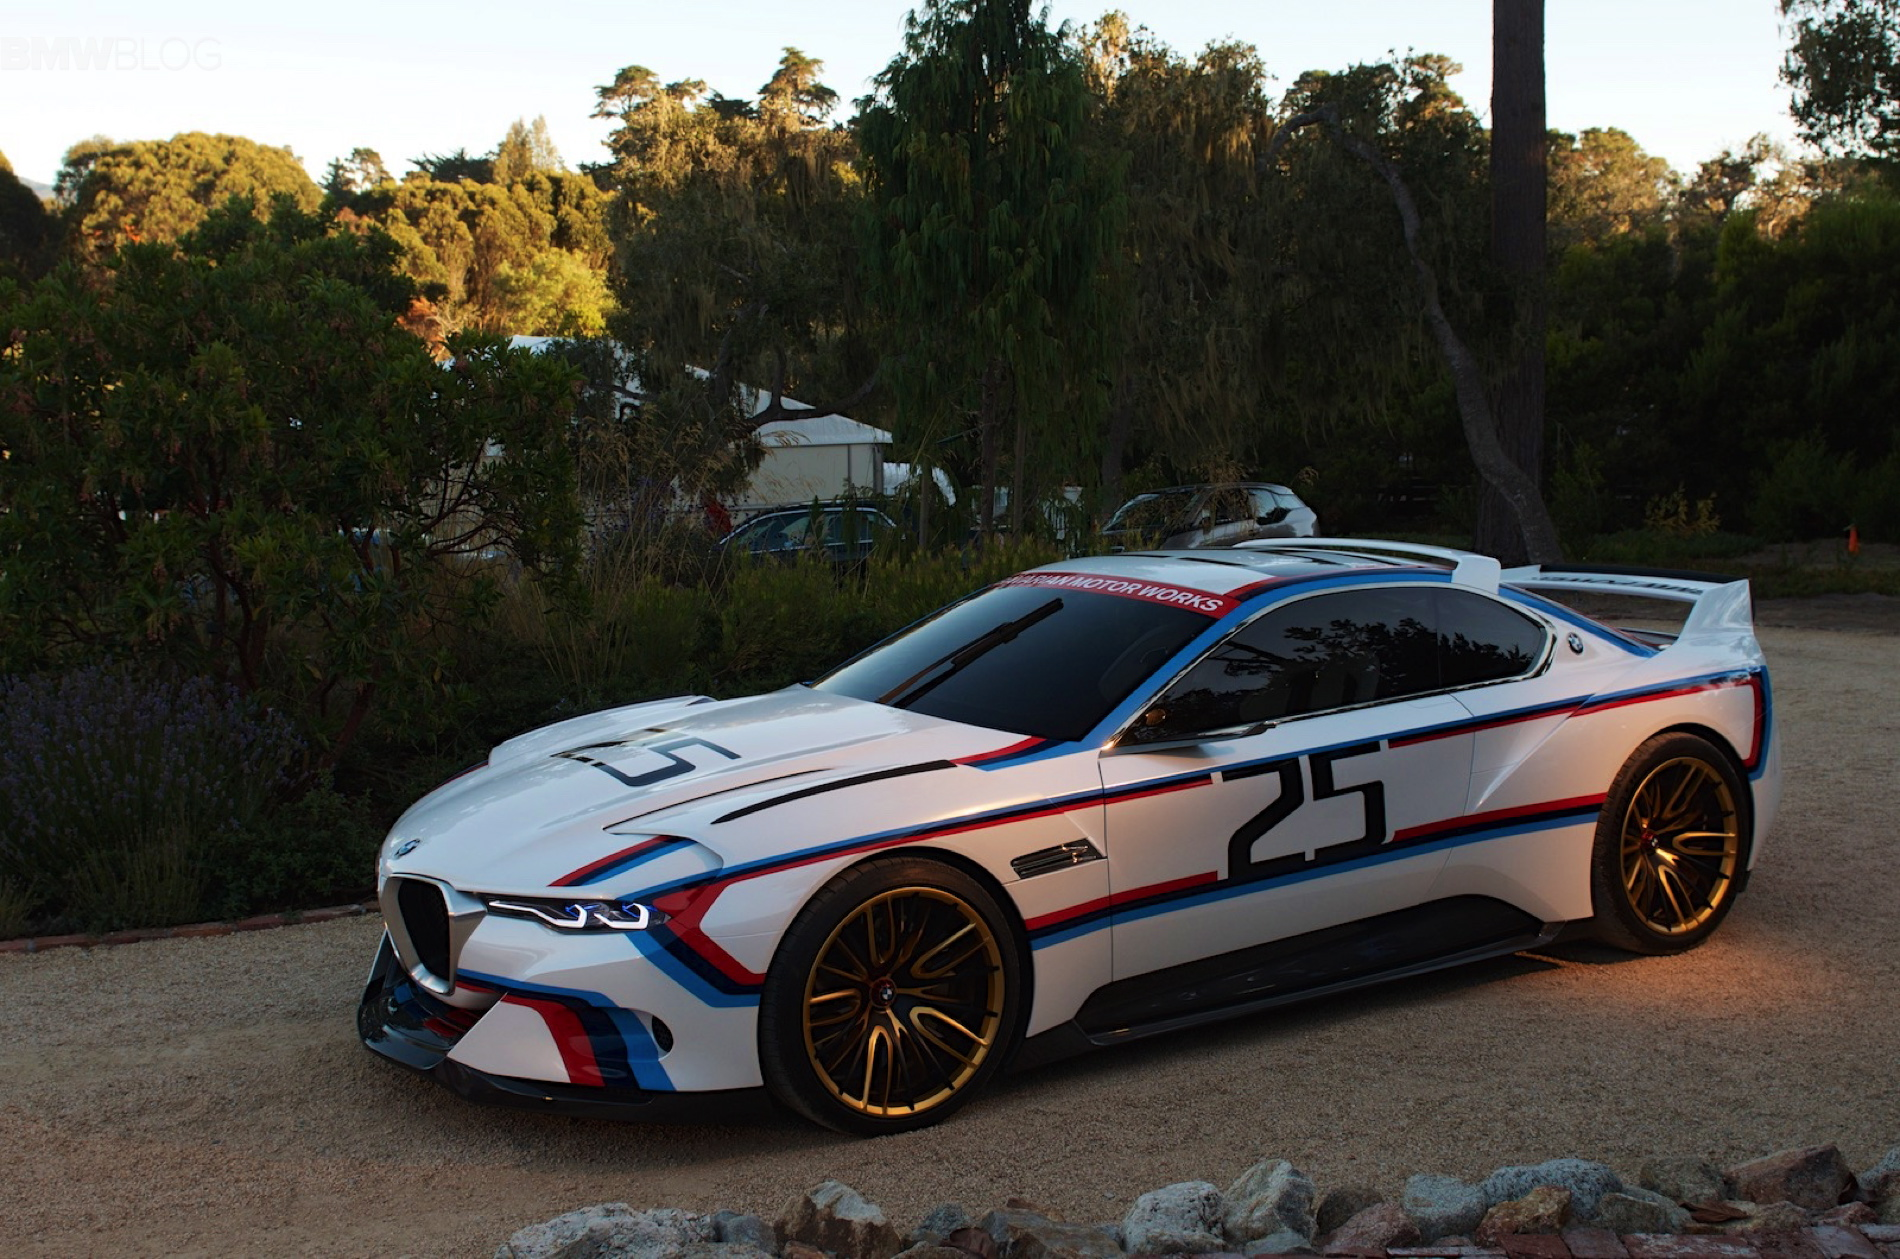 BMW 30 CSL Hommage Racing images 50